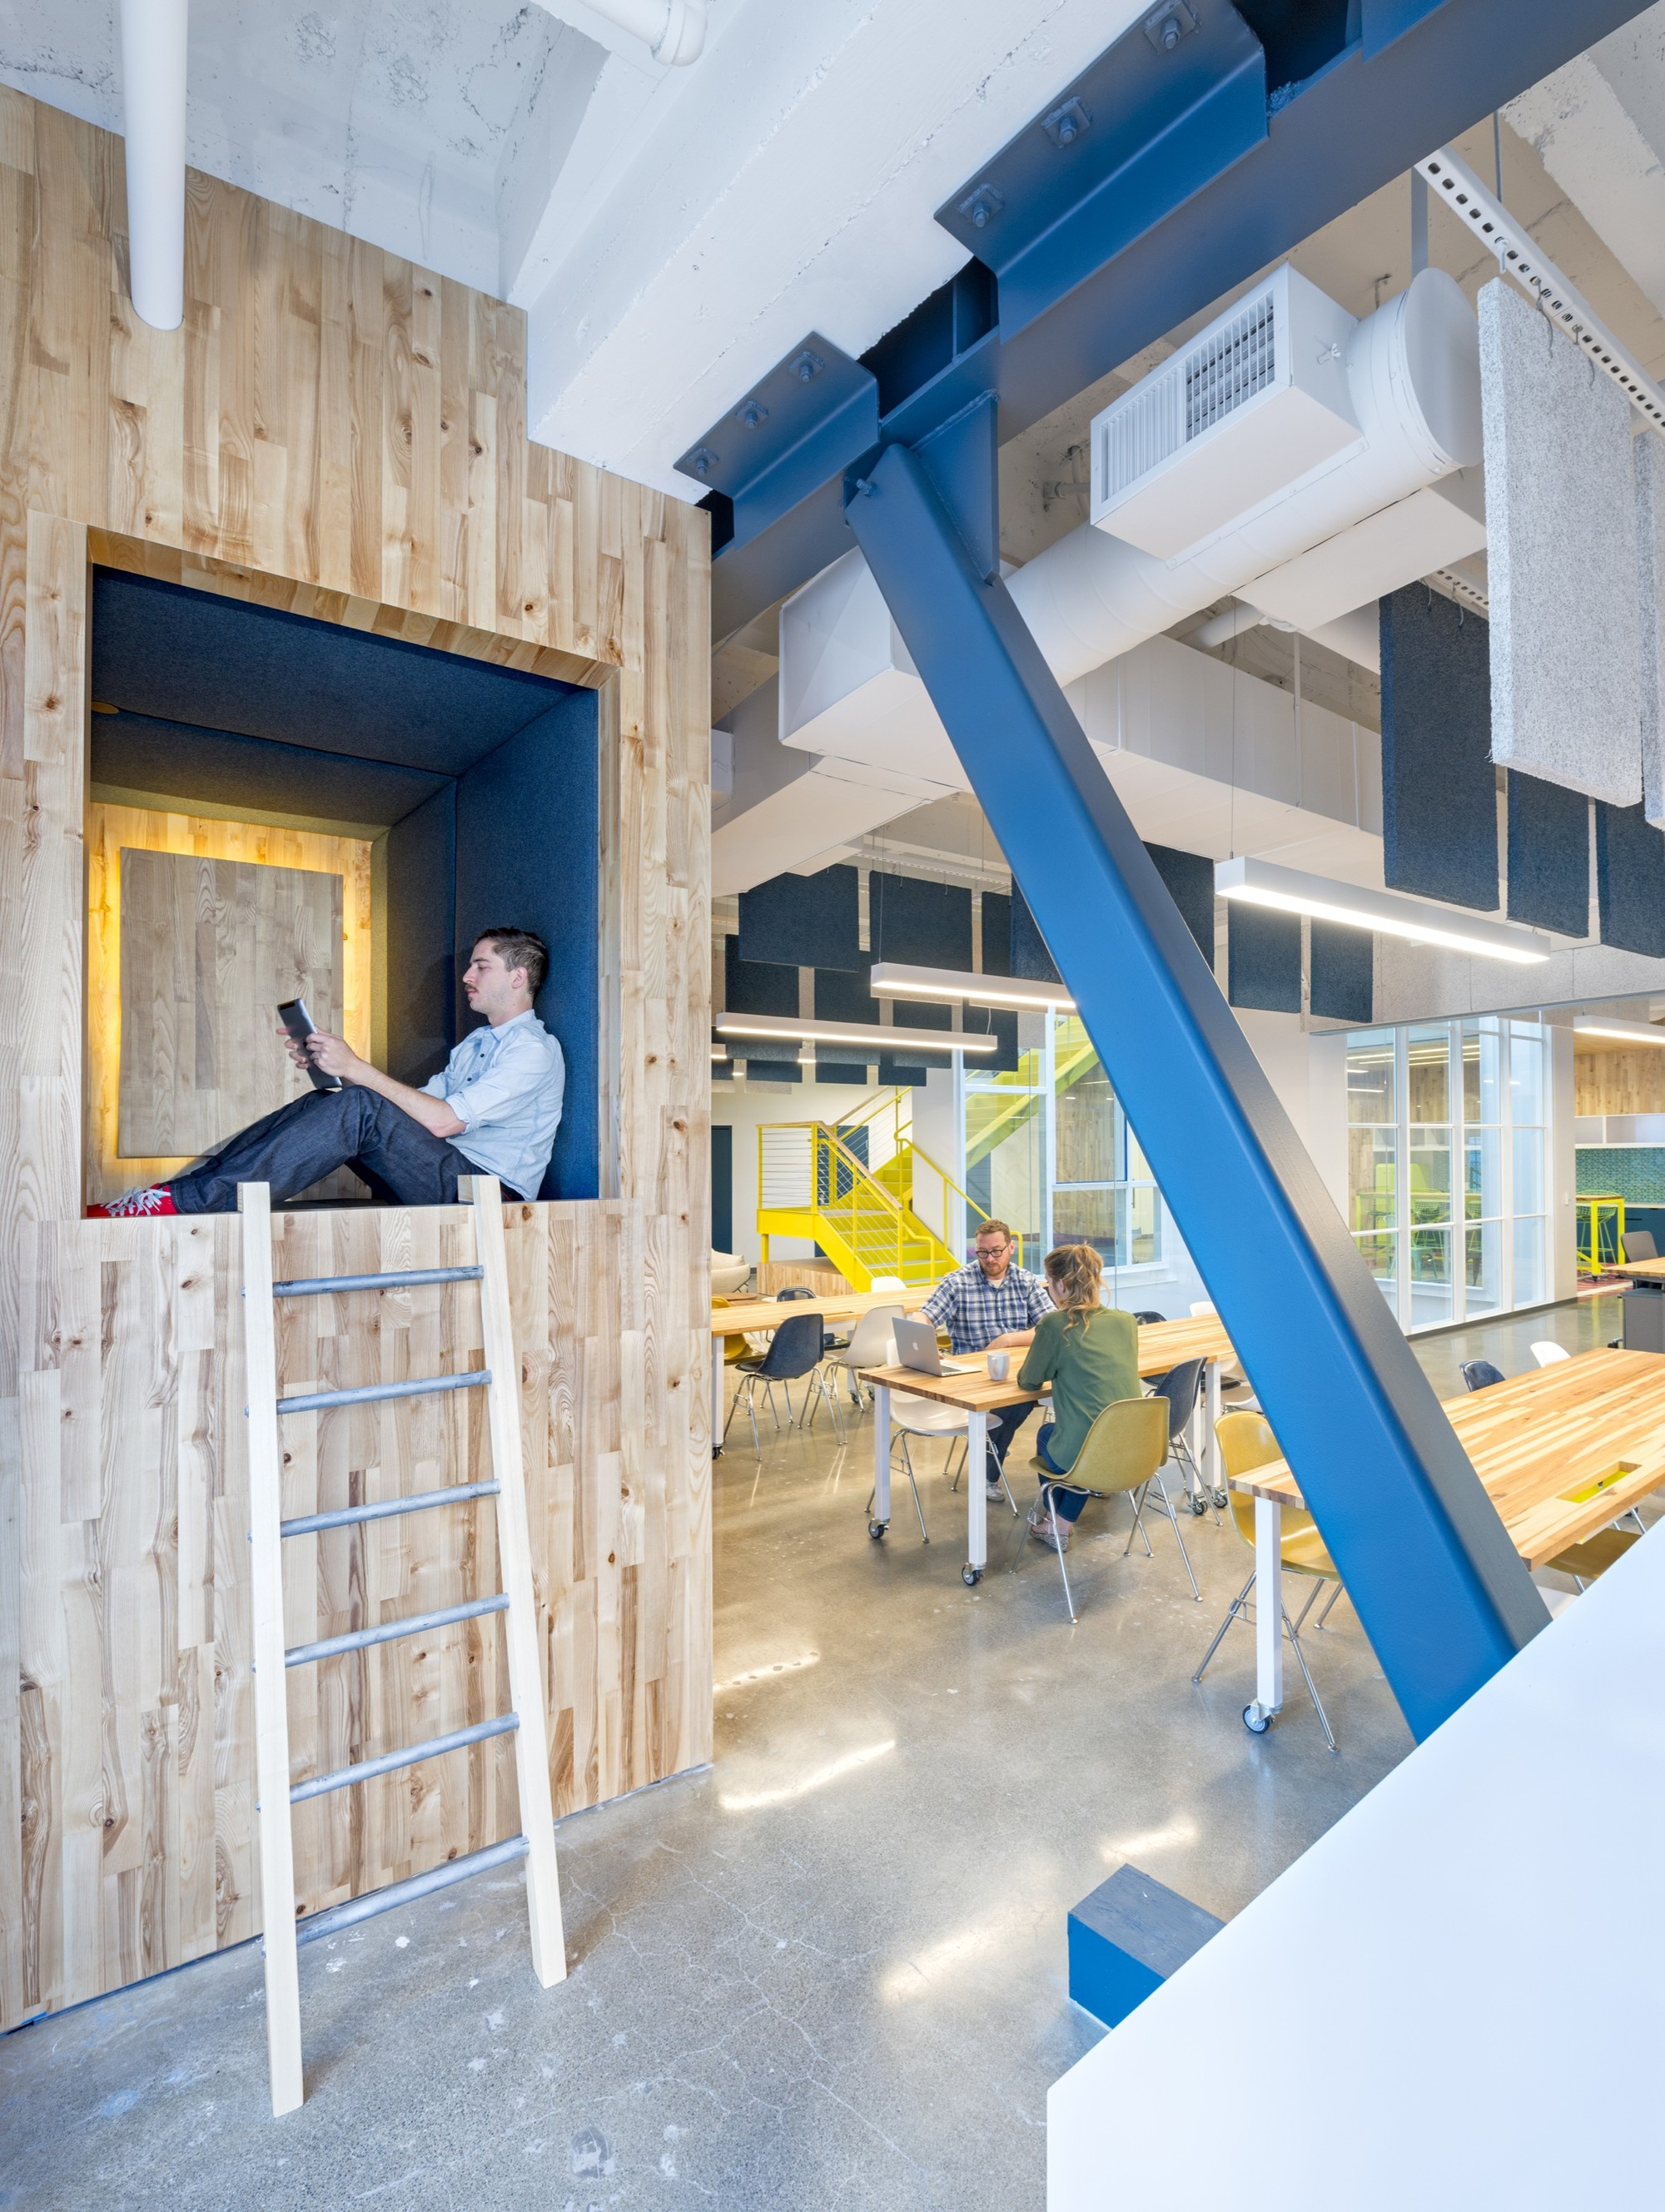 Capital one lab studio o a archdaily for Design companies in san francisco